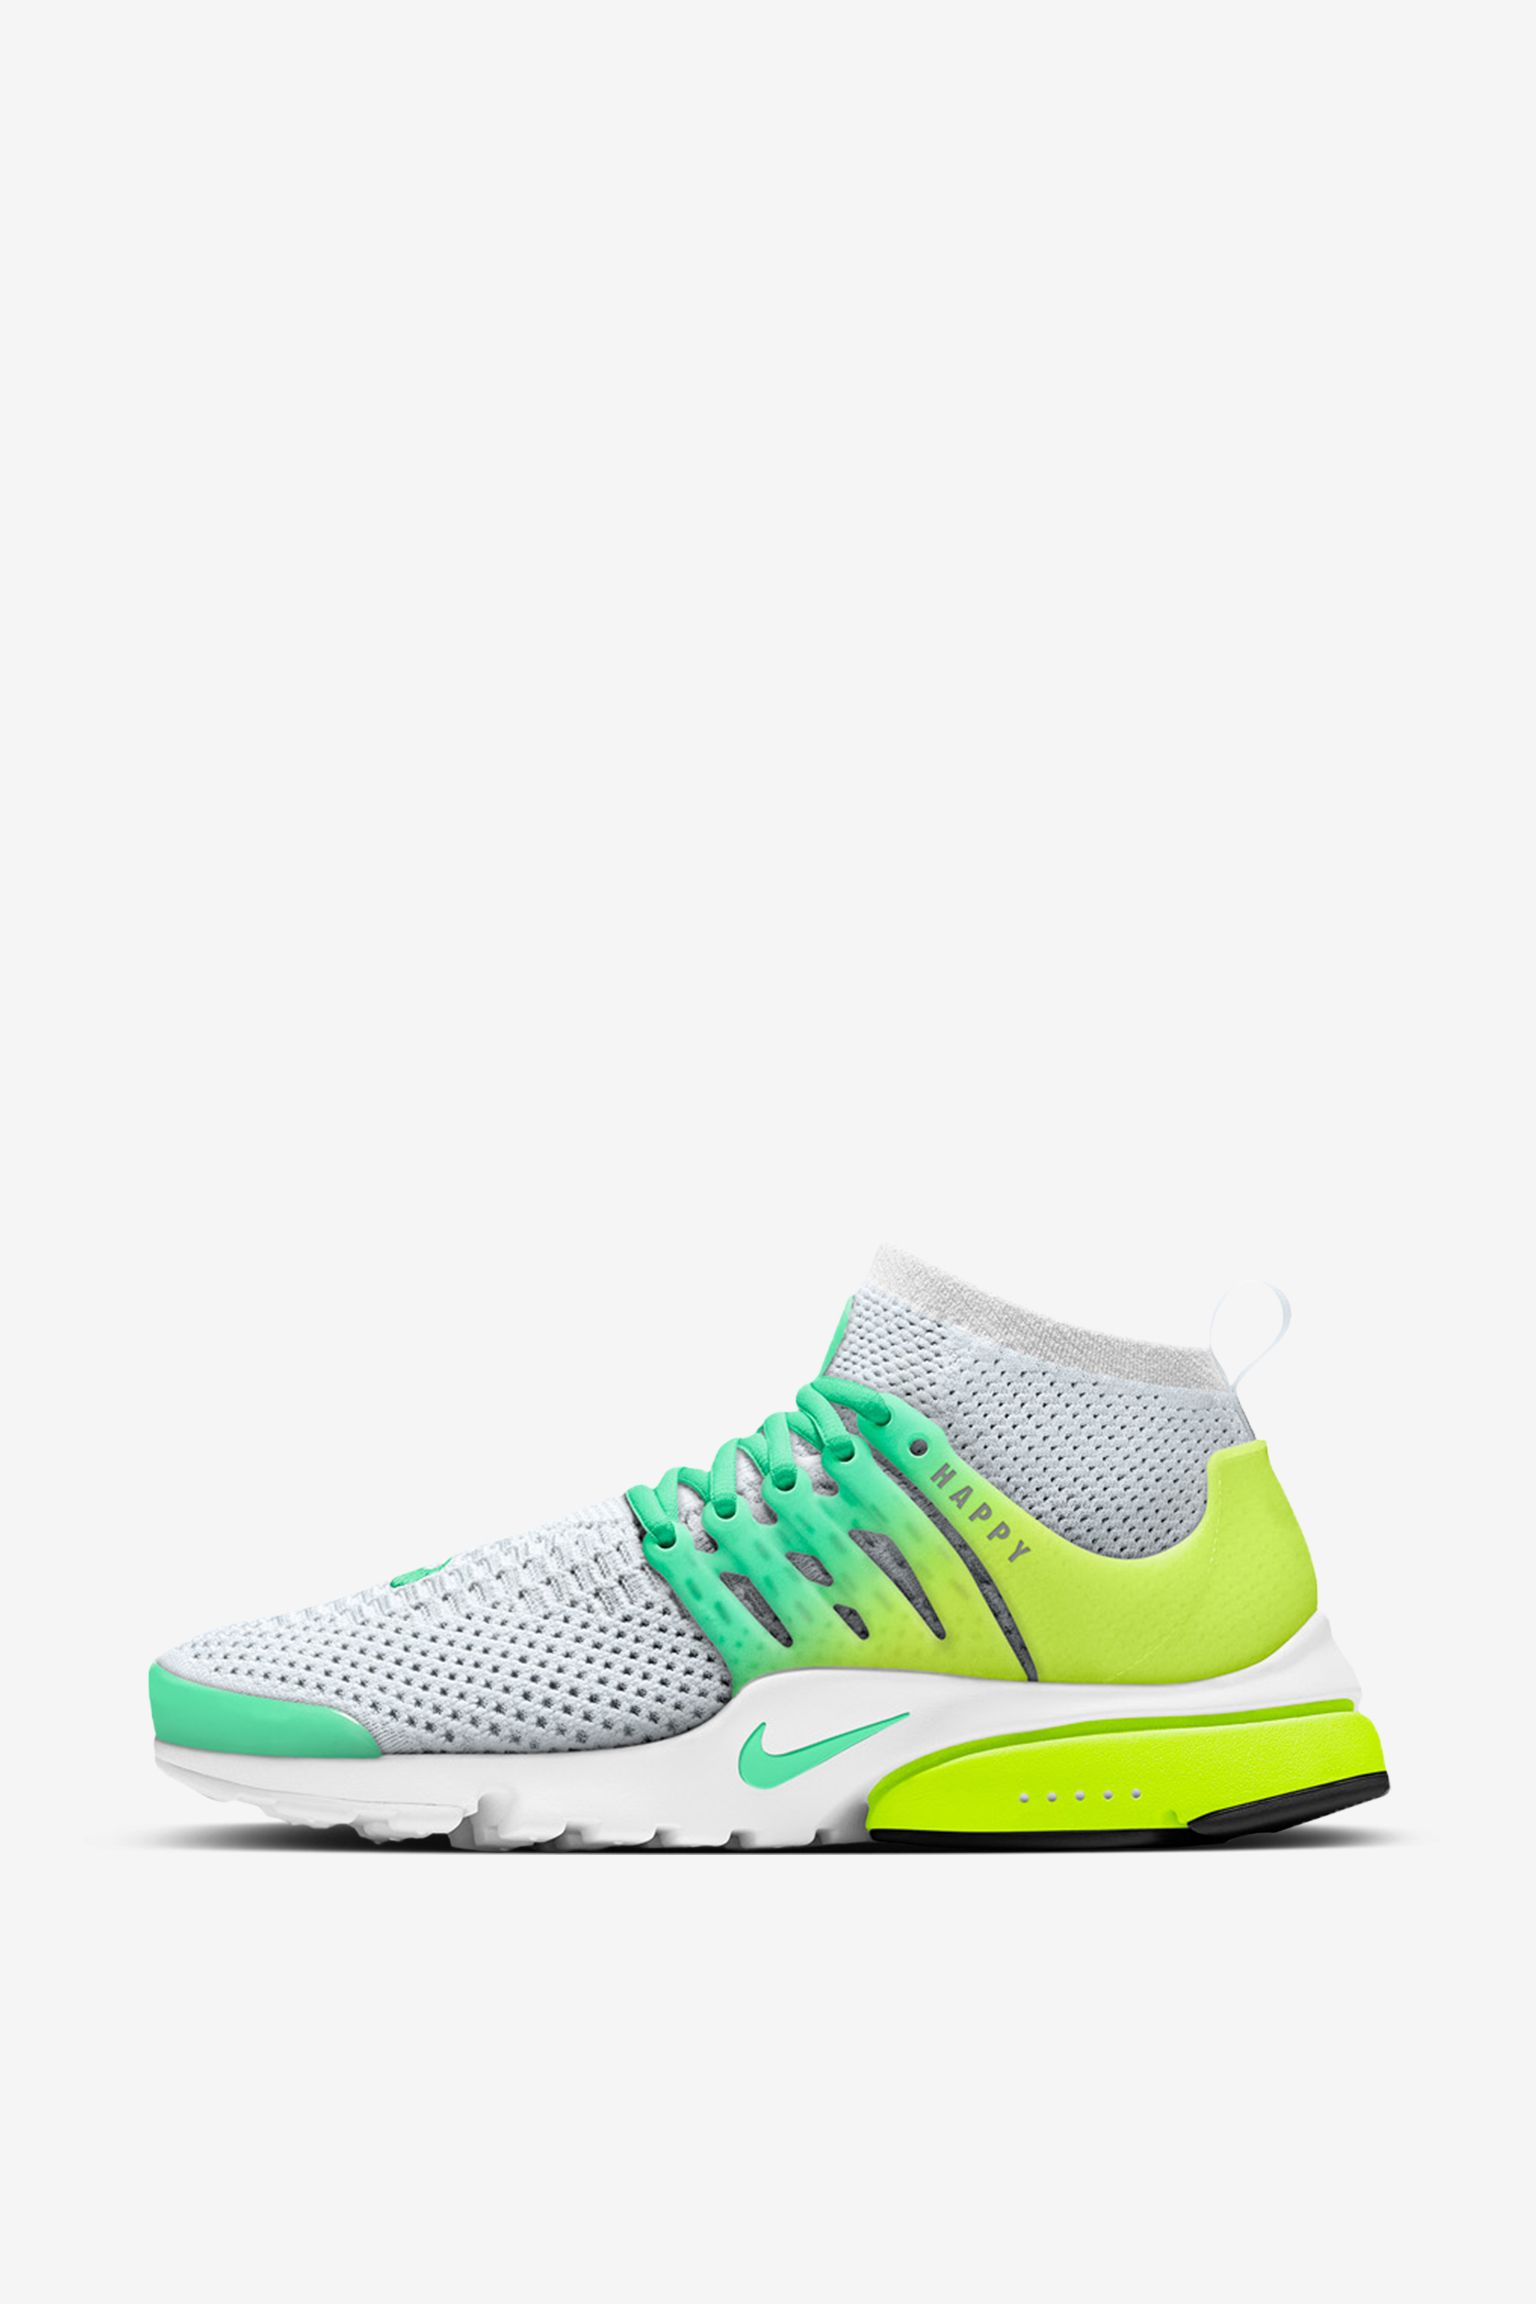 AIR PRESTO ULTRA FLYKNIT ID